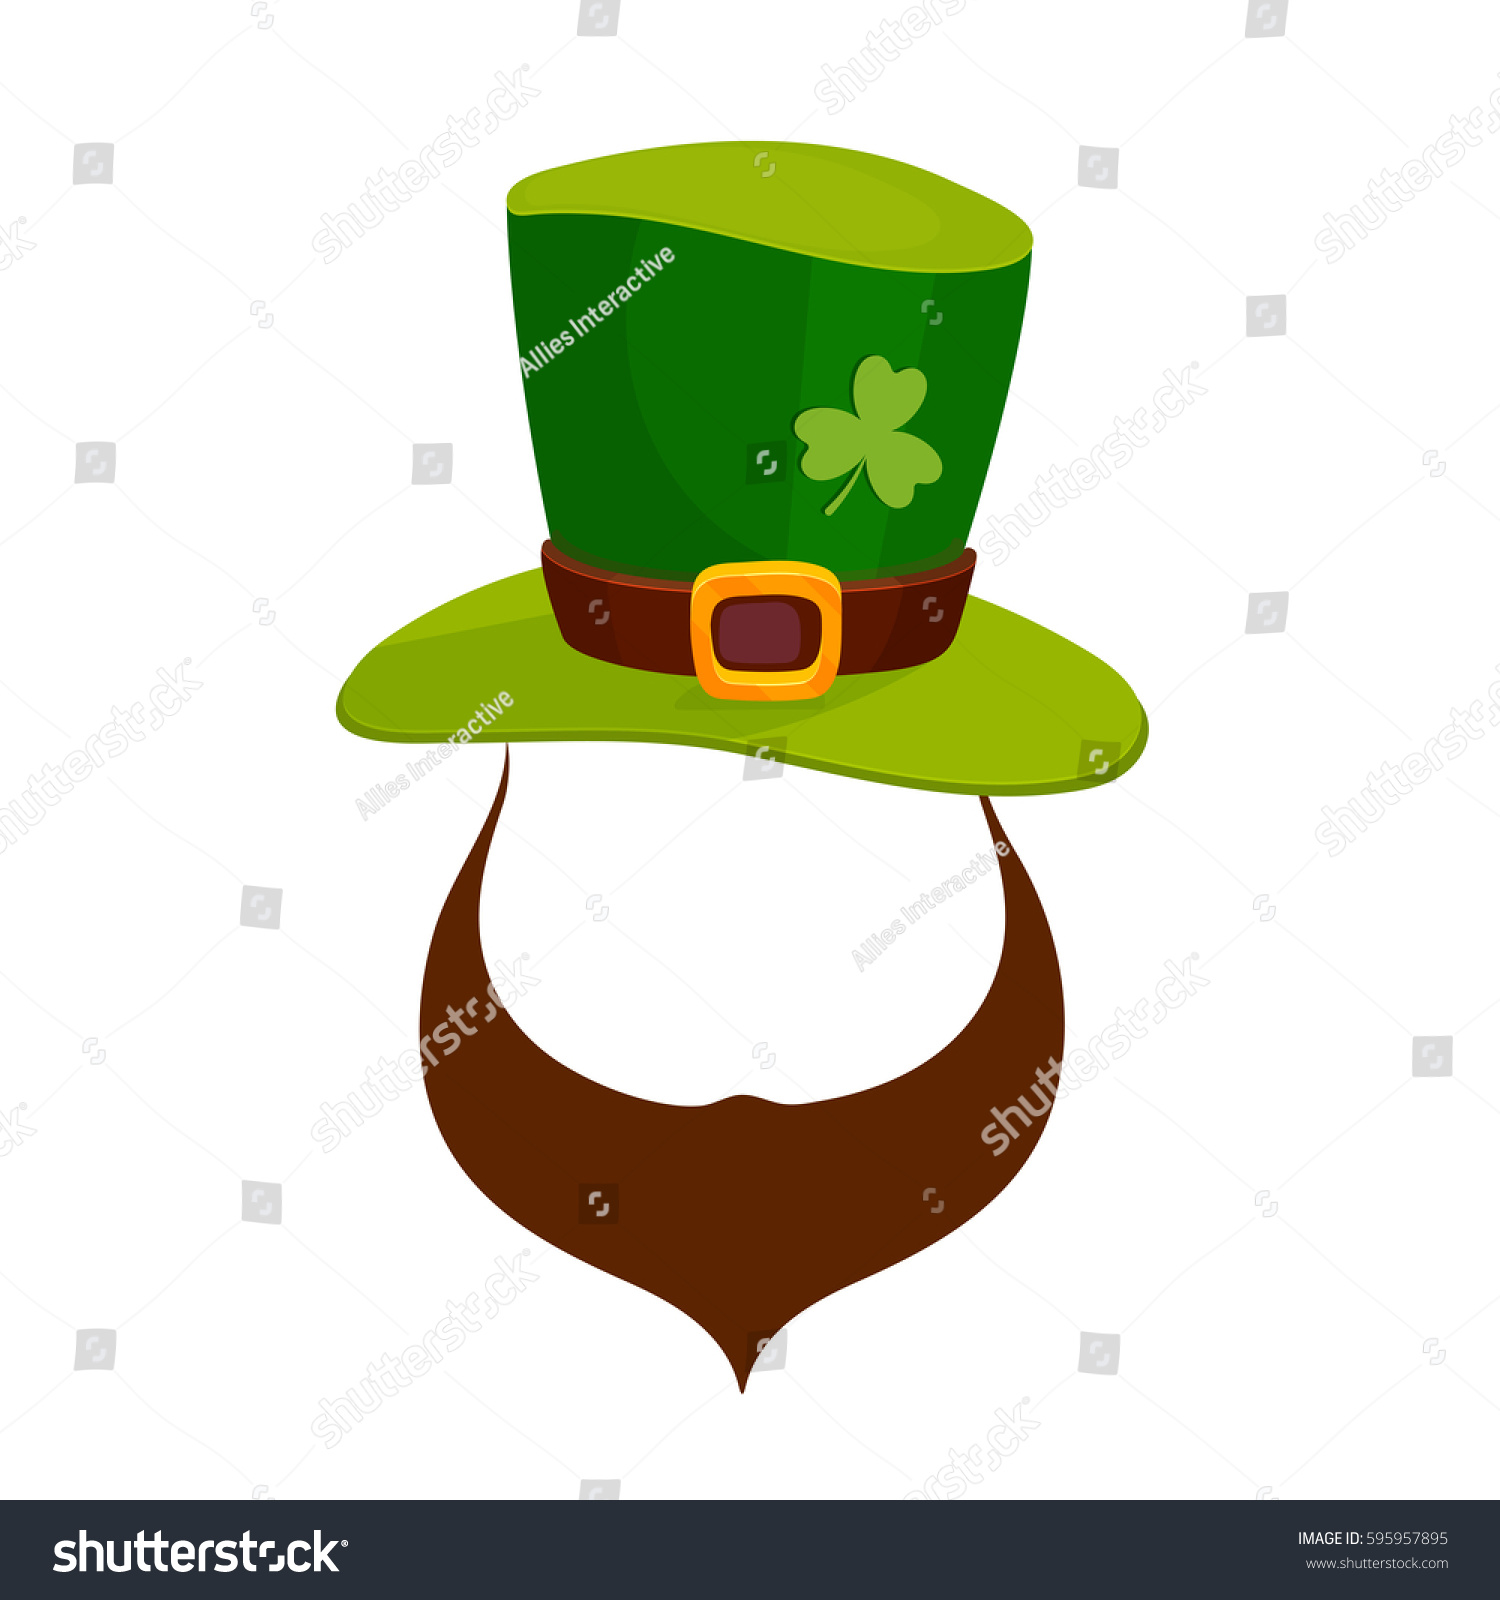 leprechaun mask template - leprechaun face beard green hat happy stock vector